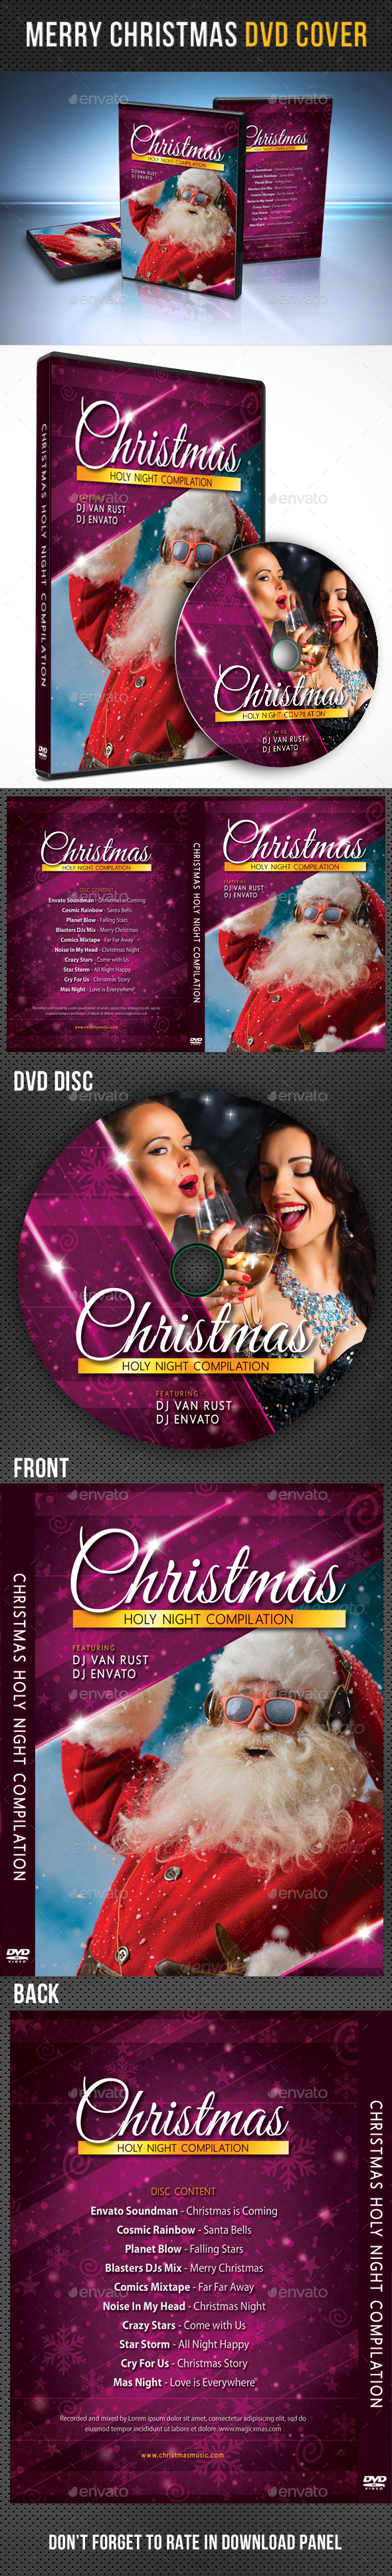 Merry Christmas DVD Cover Template - CD & DVD Artwork Print Templates